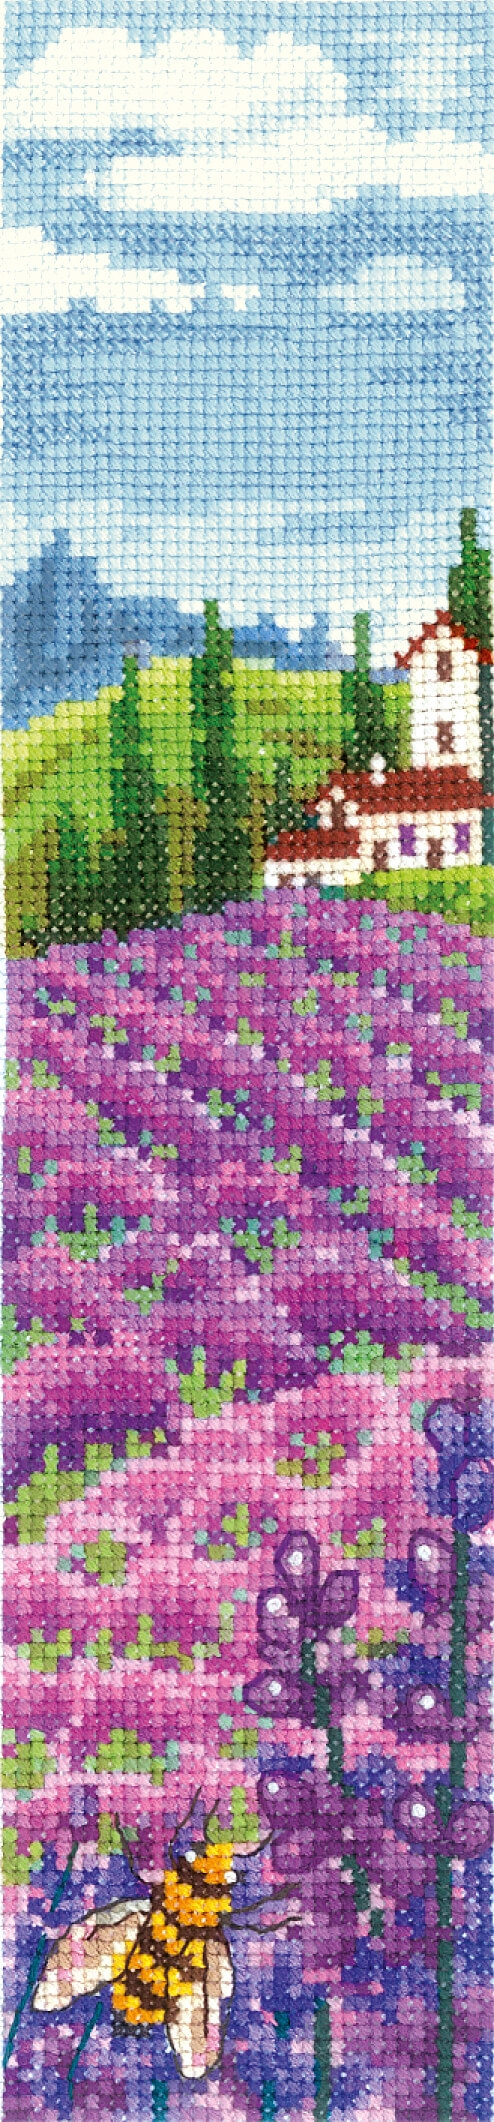 Bookmark - Lavender Fields